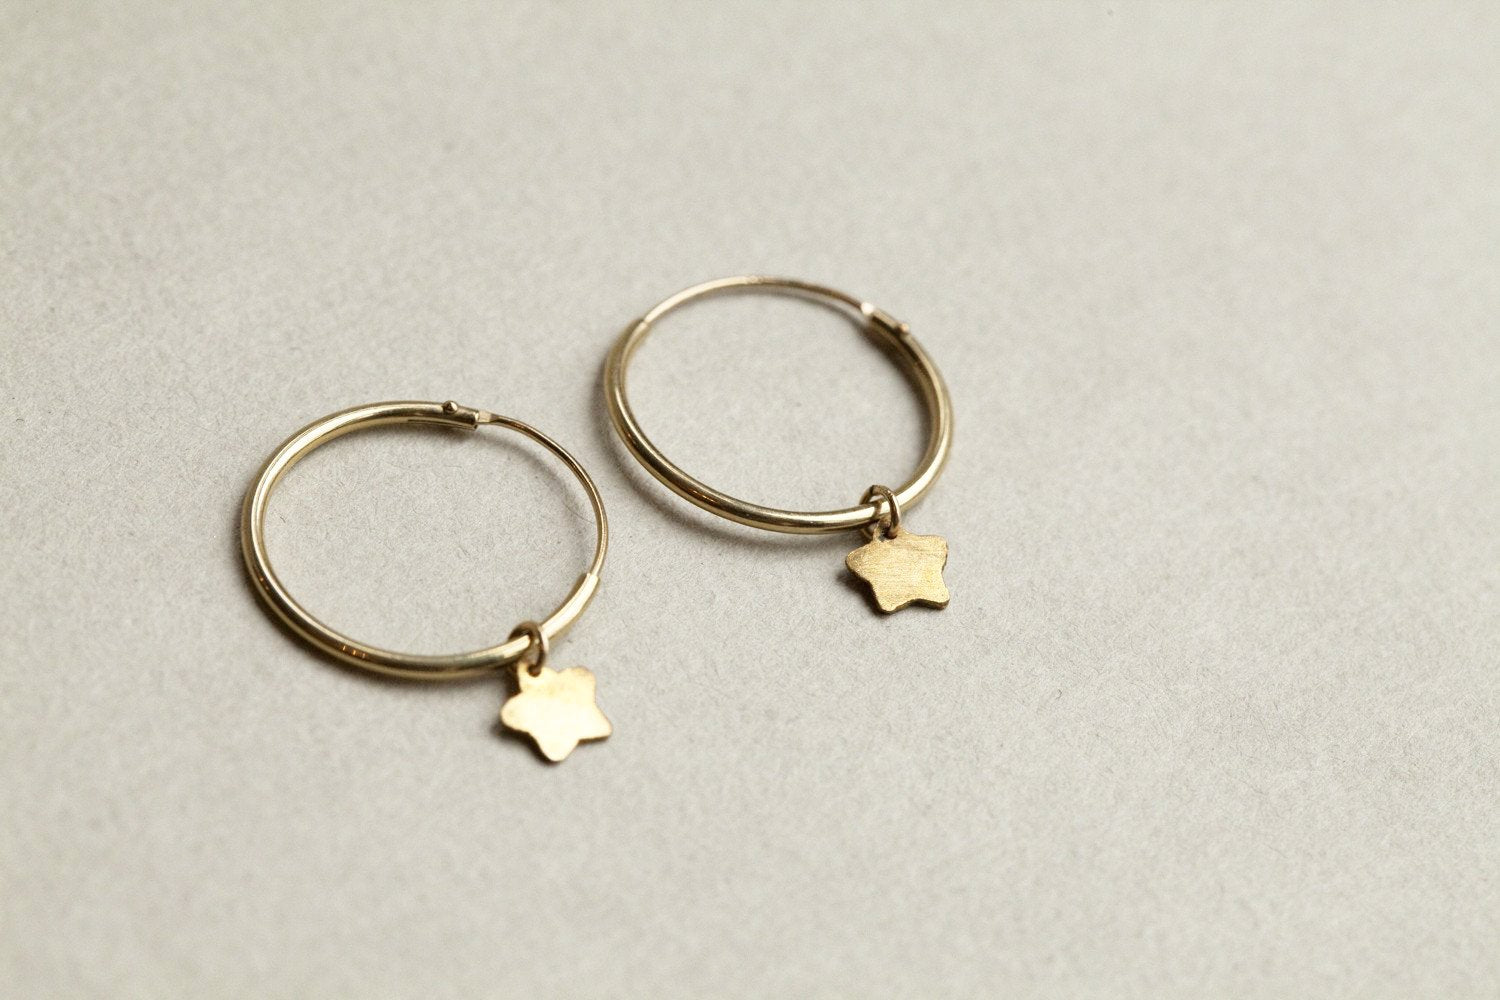 Alice Eden gold plated super star hoops, also available in 9 carat gold